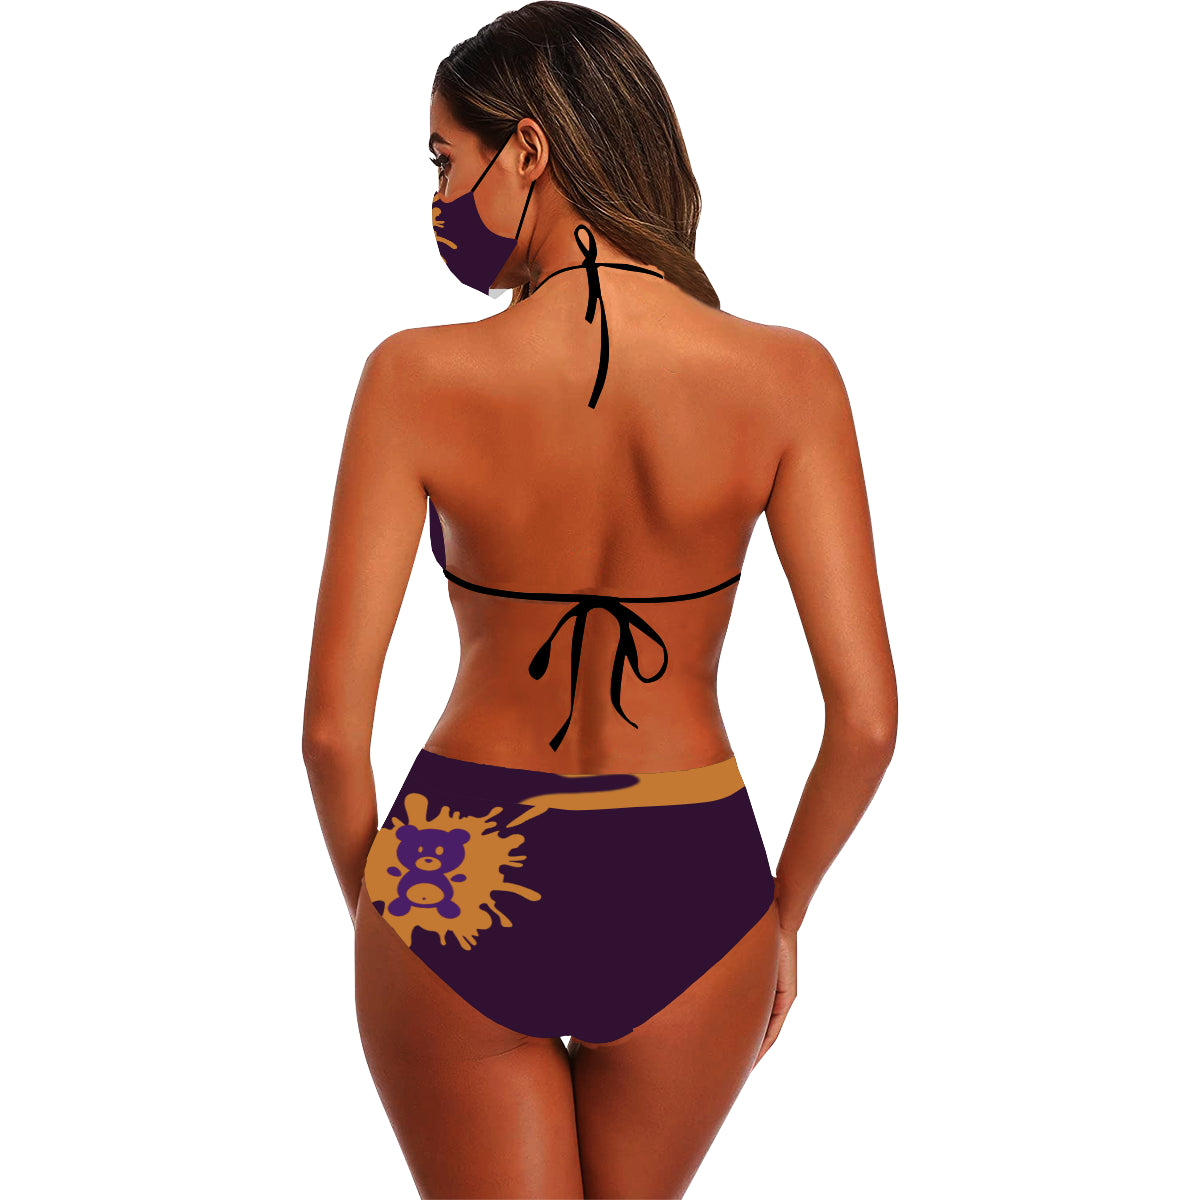 Frass Da Bear Stringy Selvedge Bikini Set with Mouth Mask